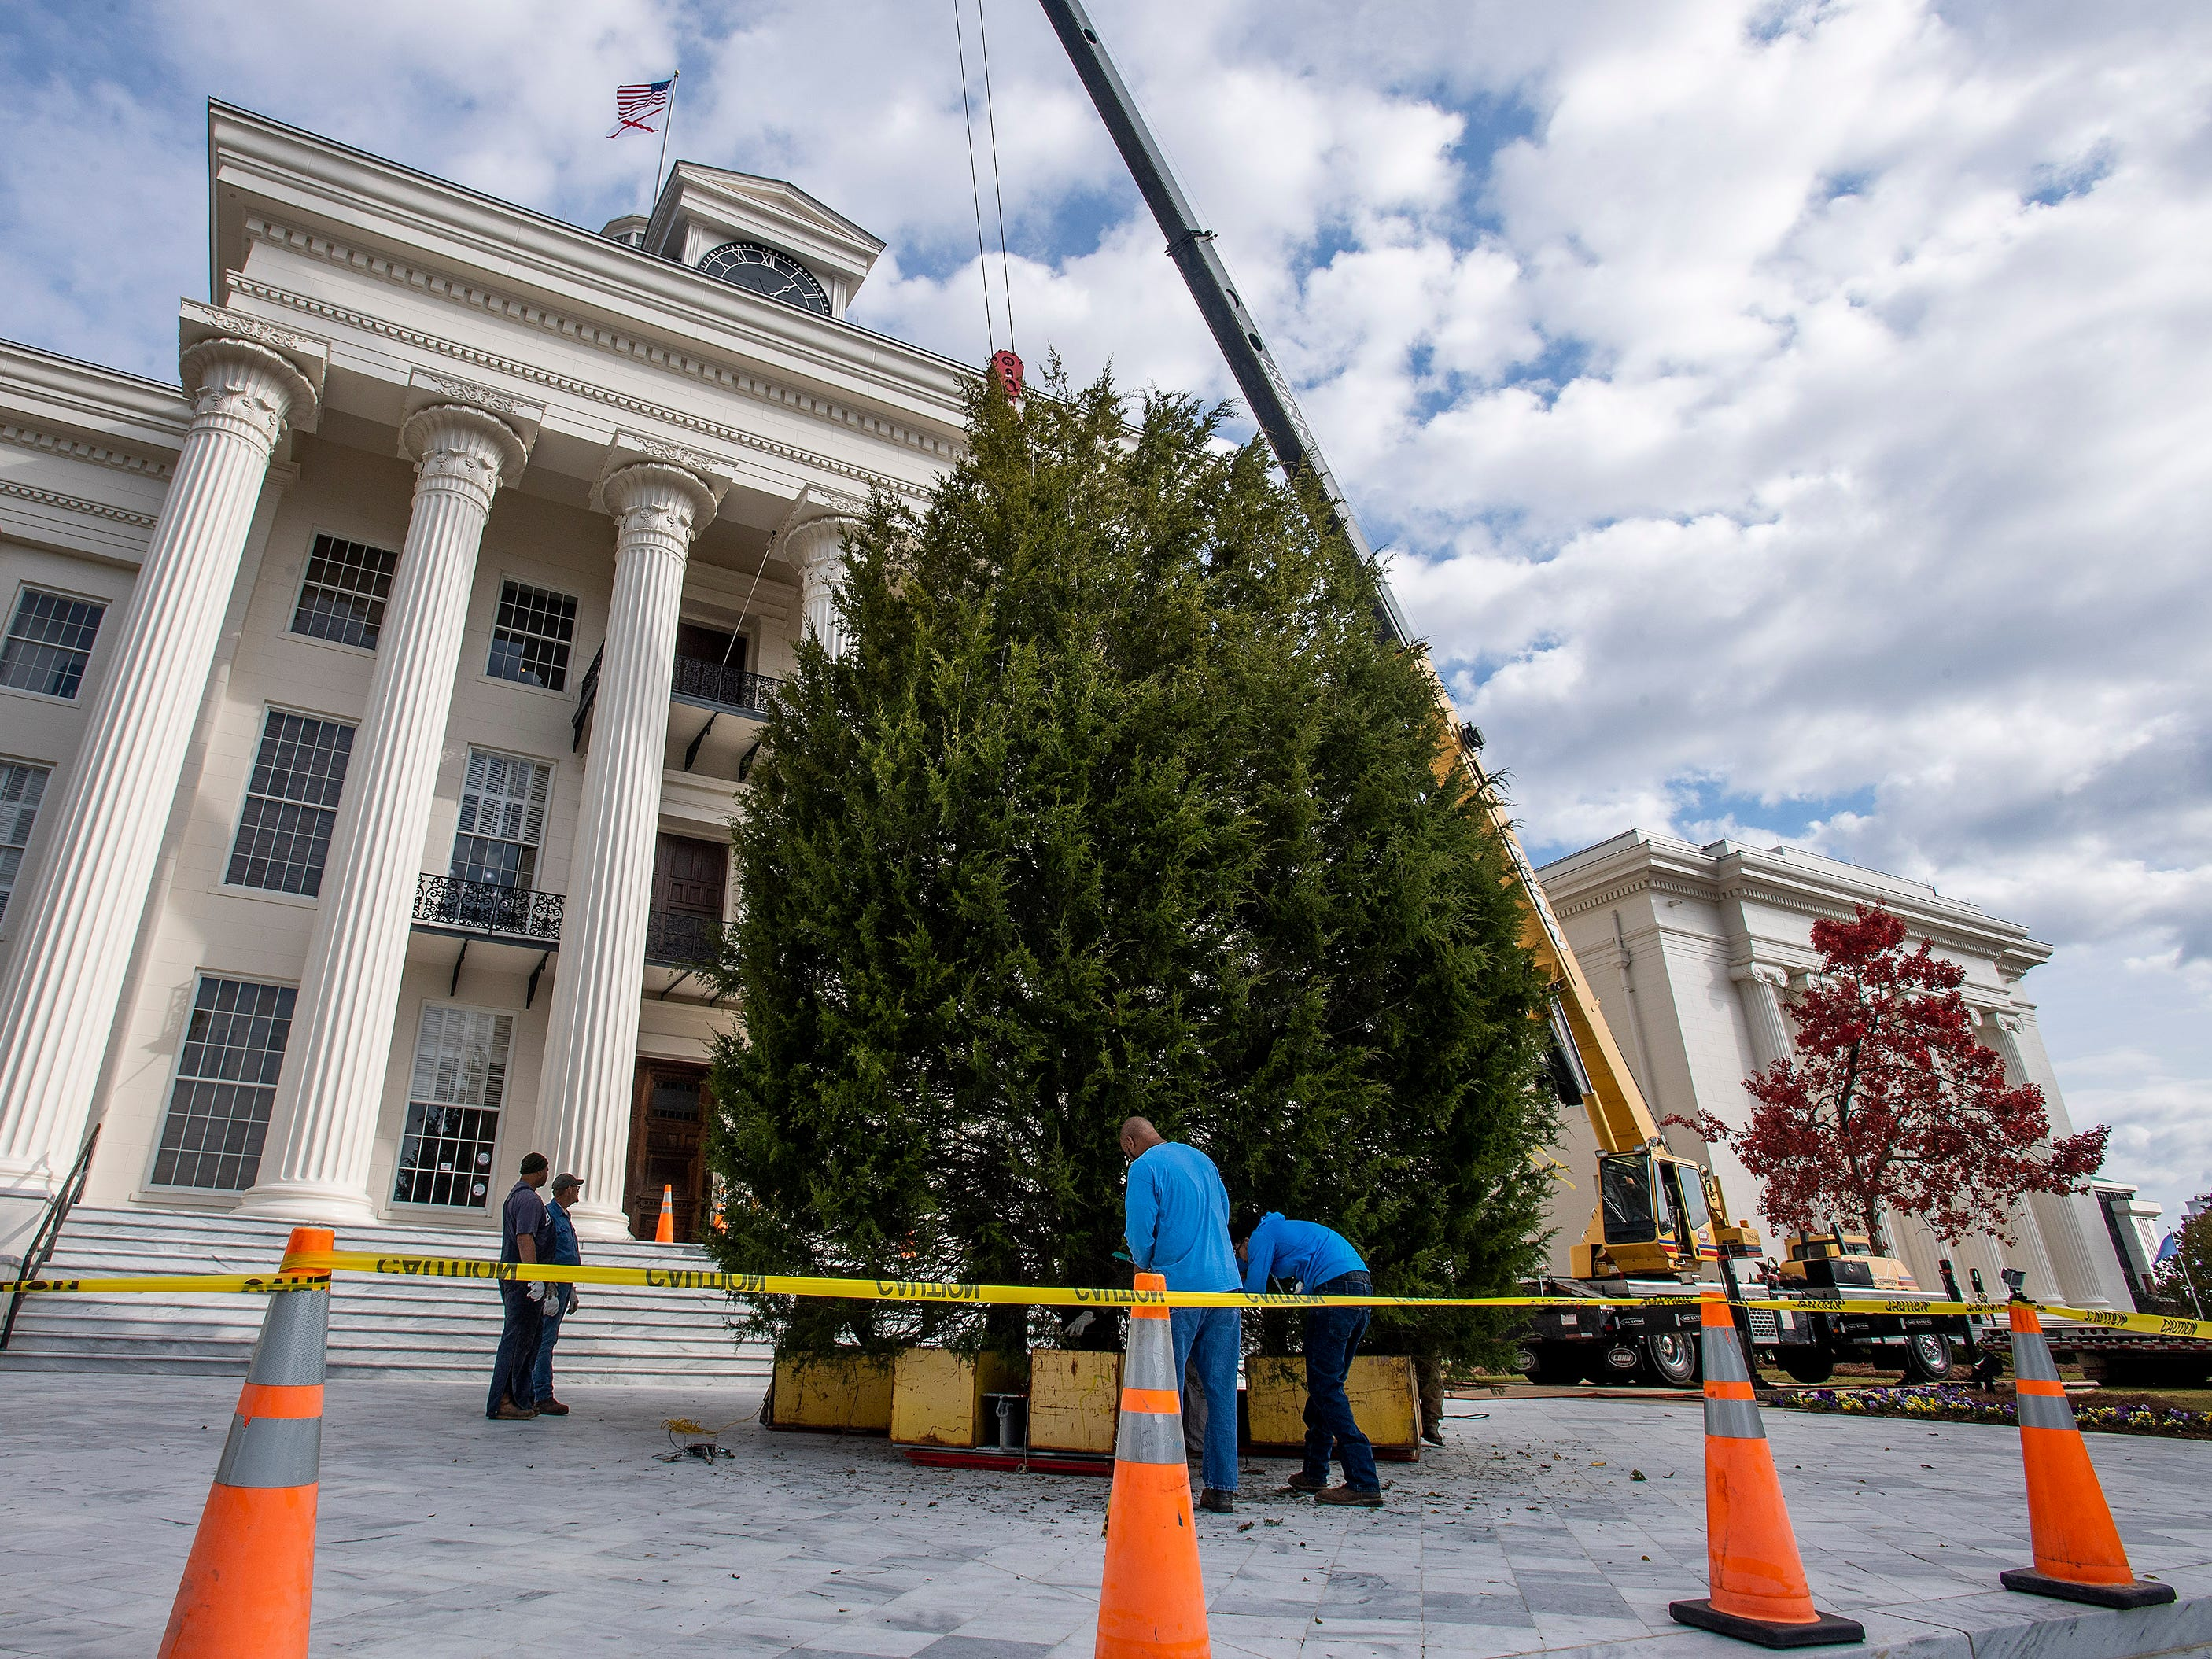 The State Capitol Christmas Tree is installed on the state capitol steps in Montgomery, Ala., on Thursday November 29, 2018. The tree will be decorated next week and the Tree Lighting will be held on Friday December 7.